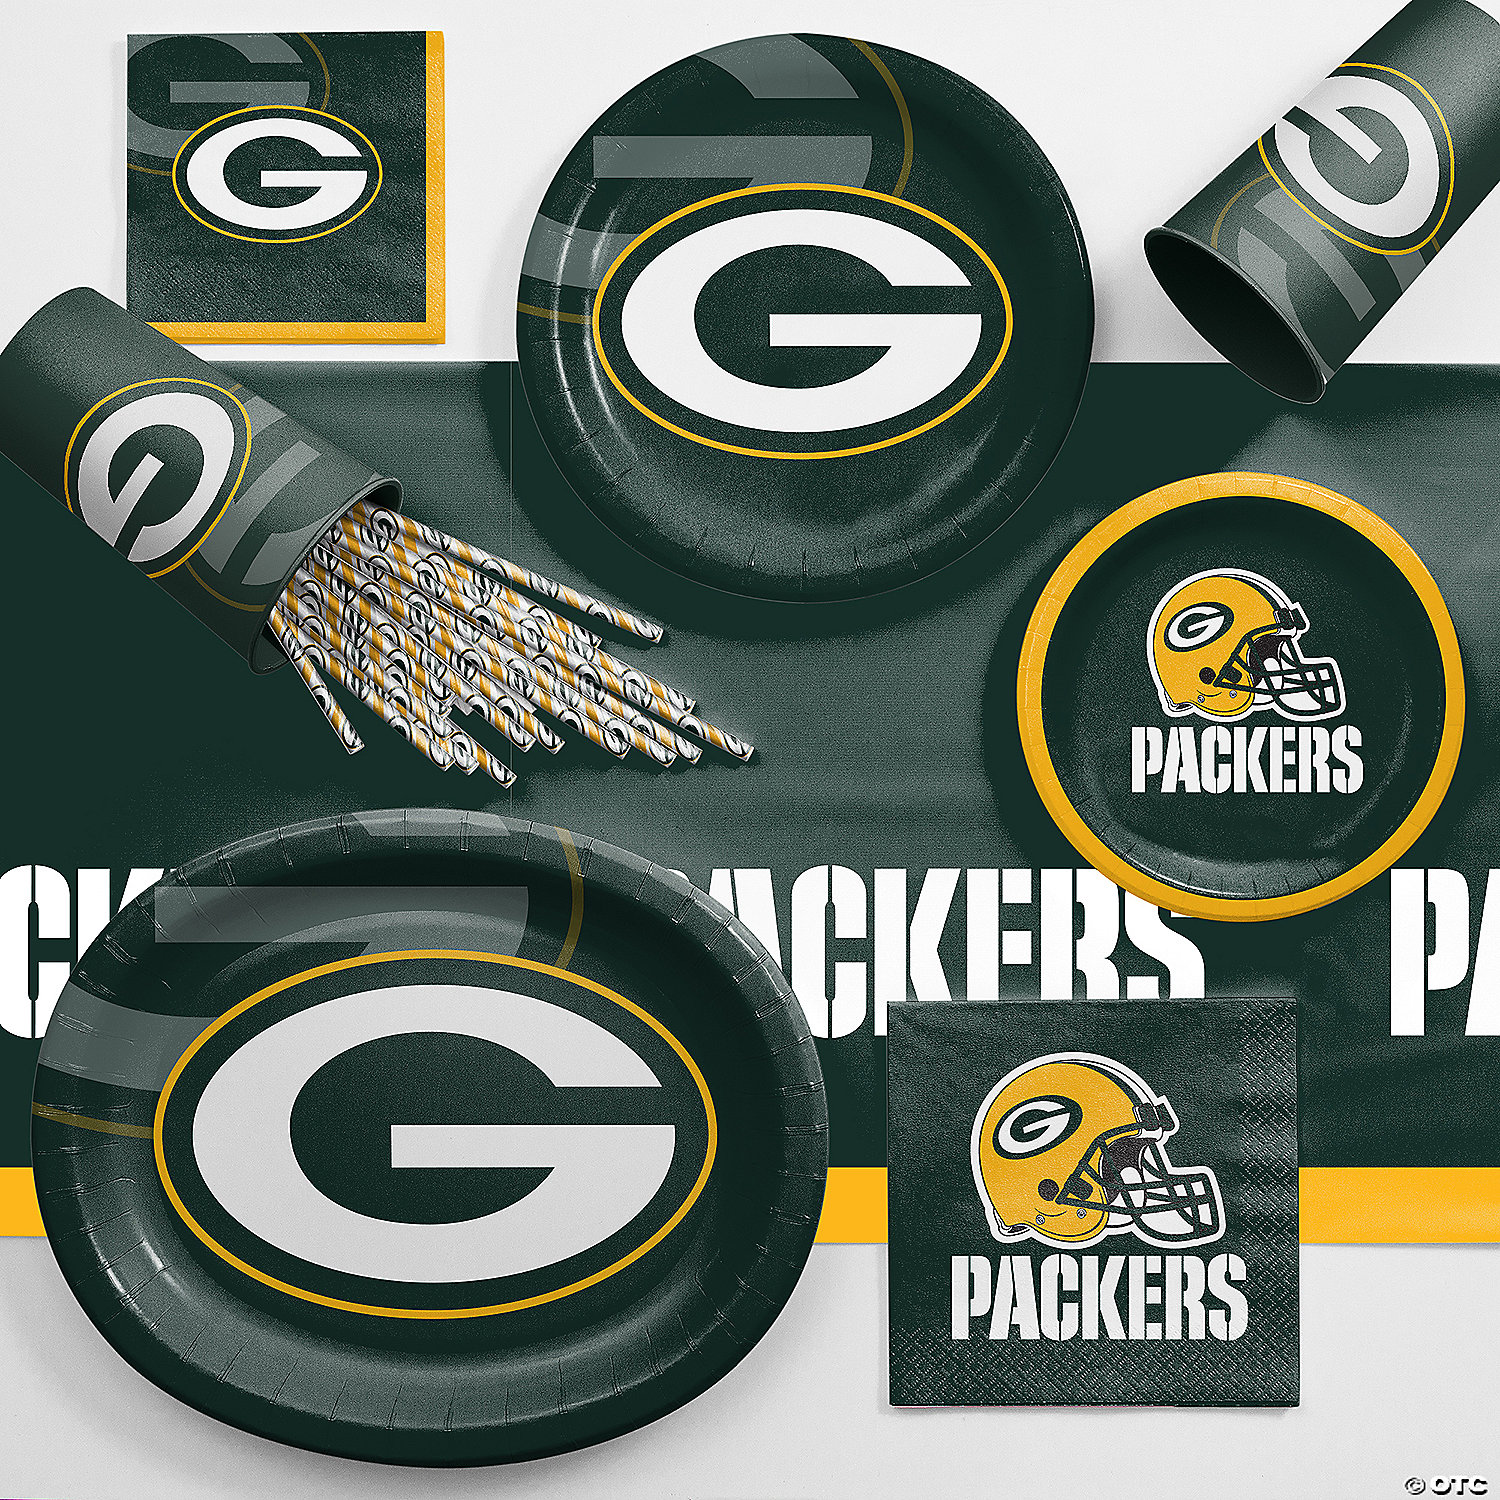 Green Bay Packers Party Decorations from s7.orientaltrading.com